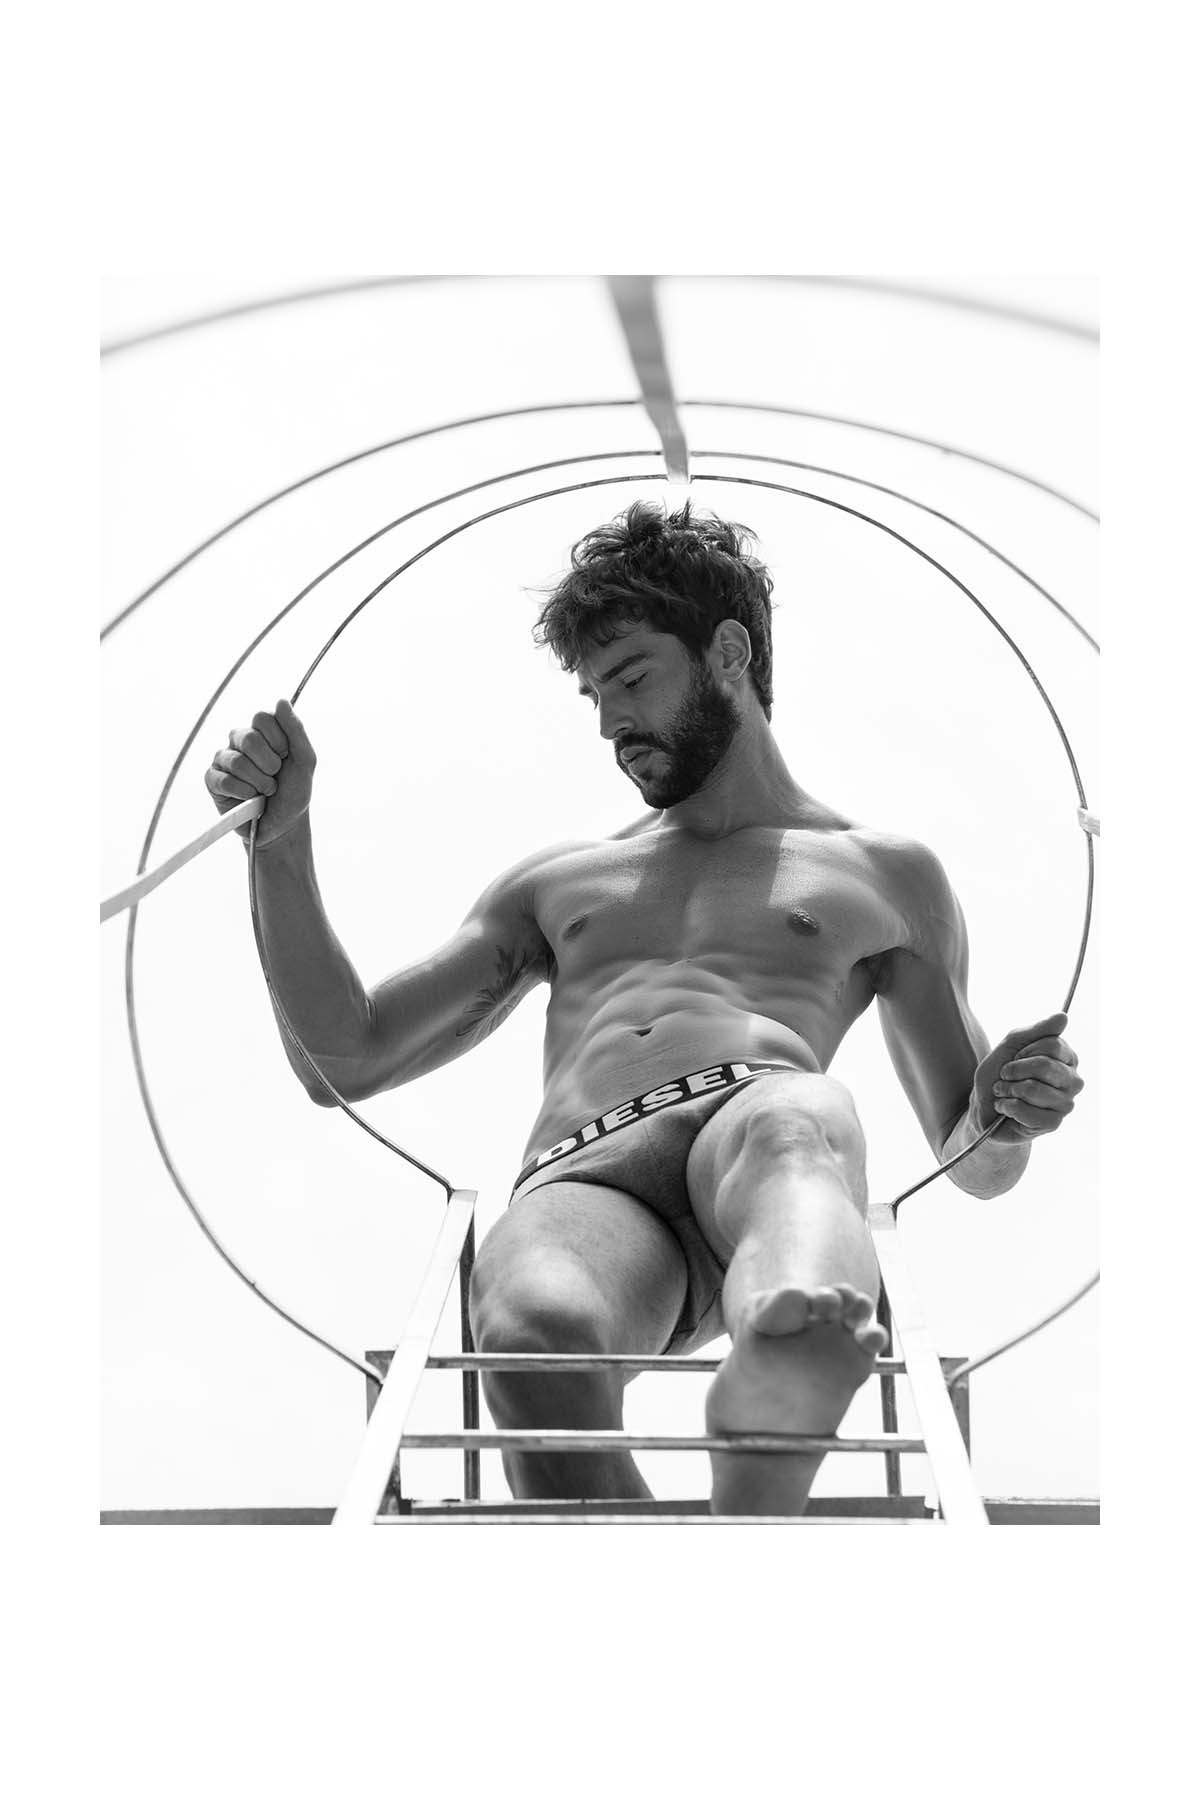 Américo Costa by Filipe Galgani for Brazilian Male Model